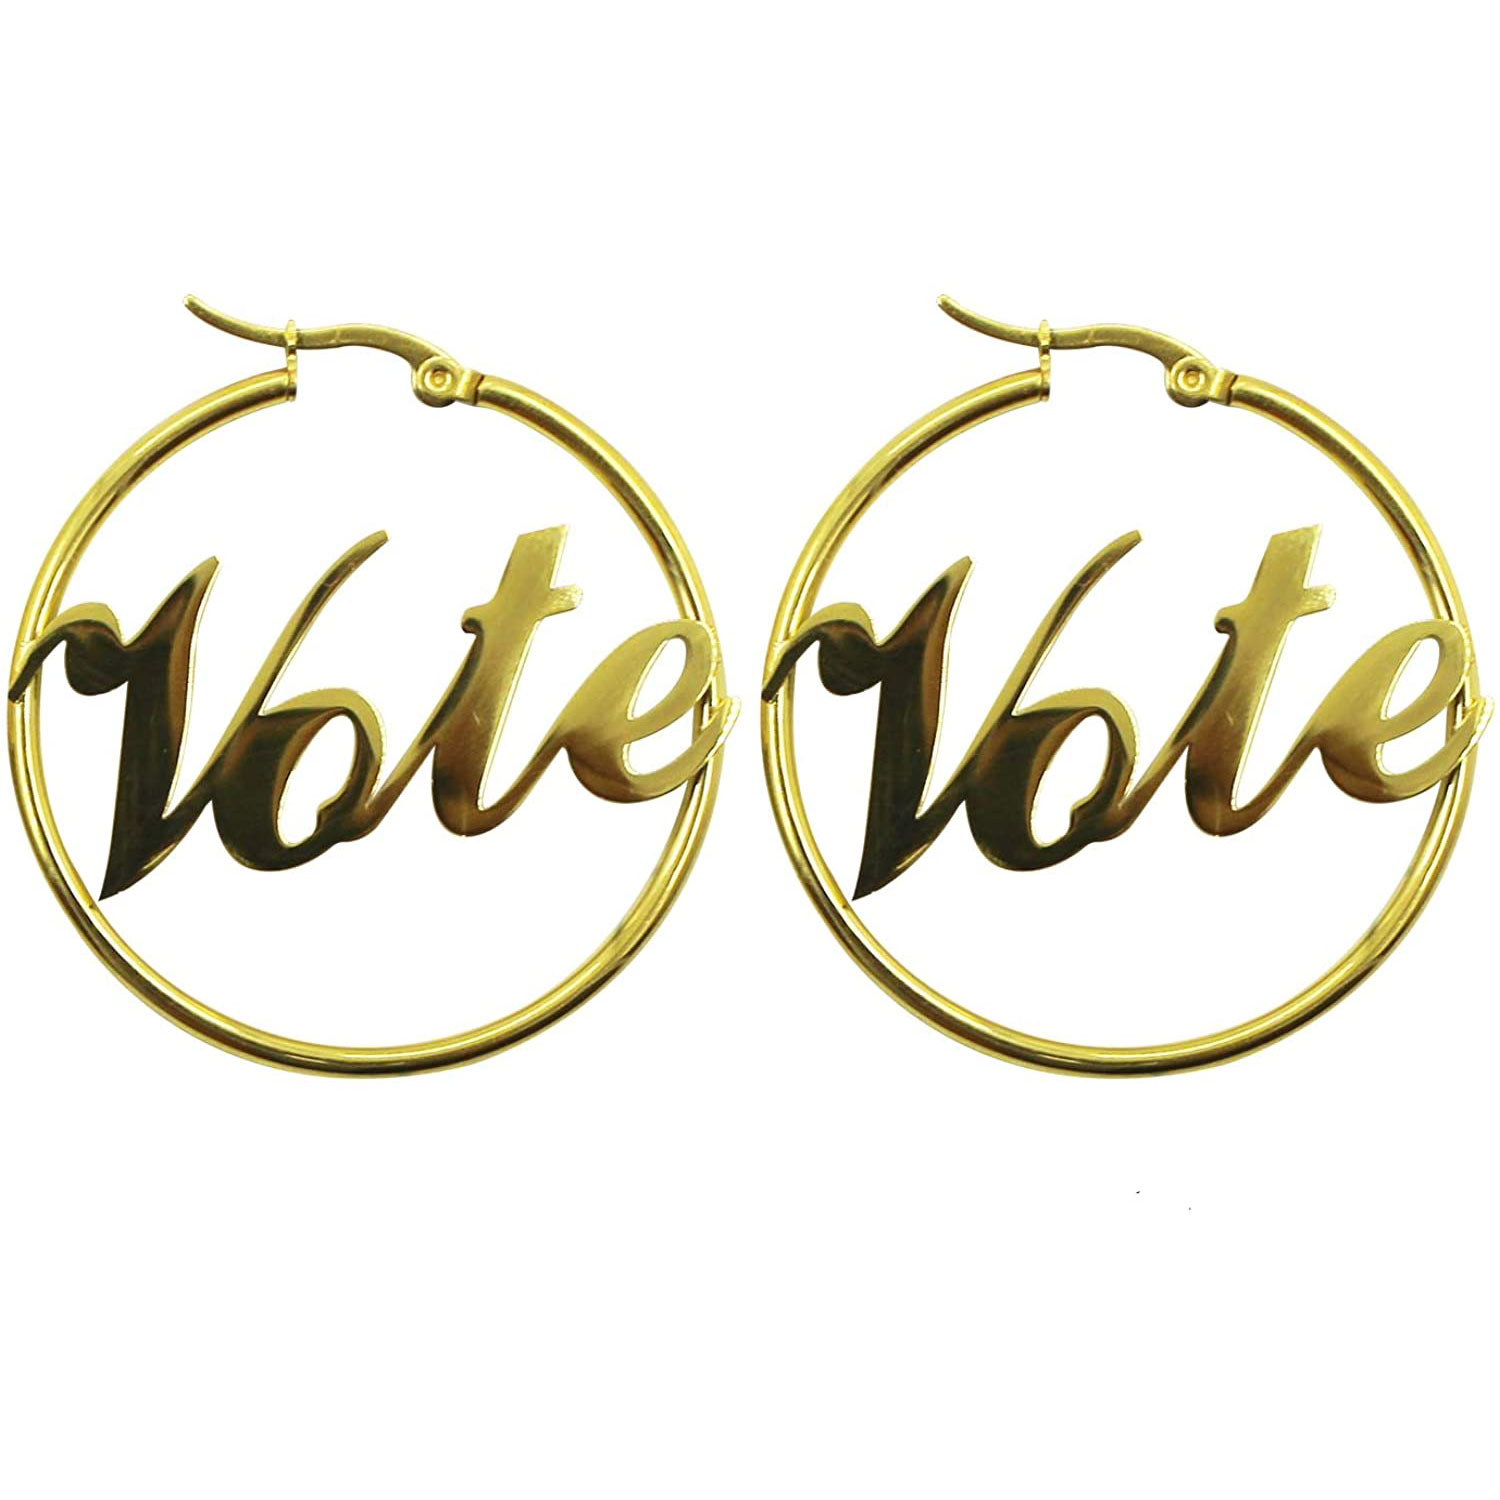 vote earrings hoops stainless steel hypoallergenic